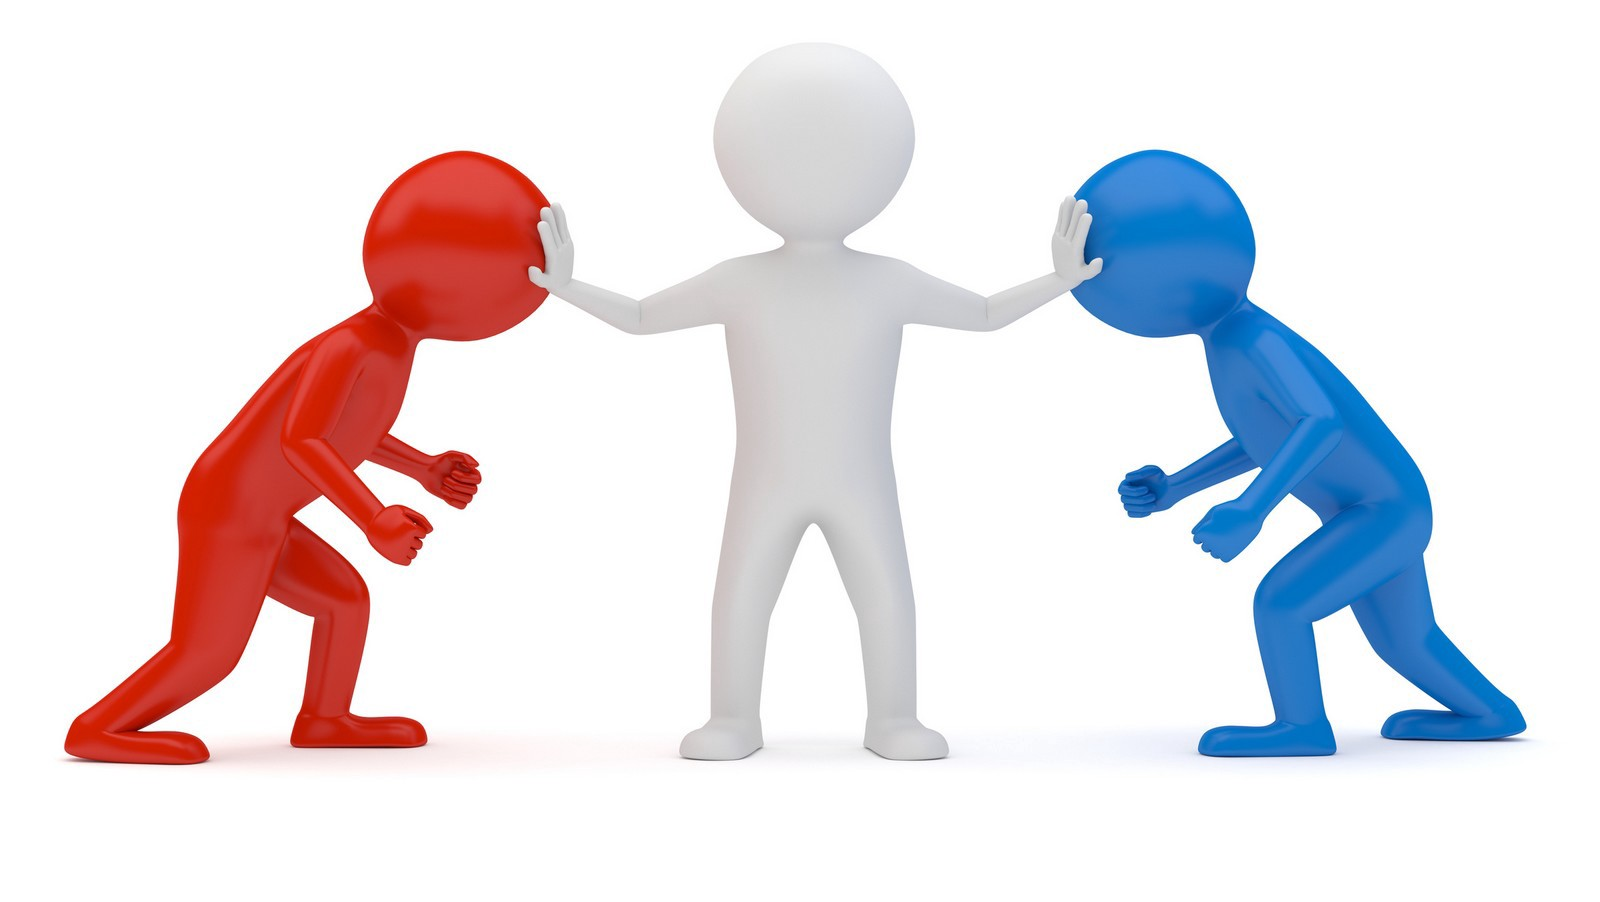 Conflict clipart. Breaking down conflicts in